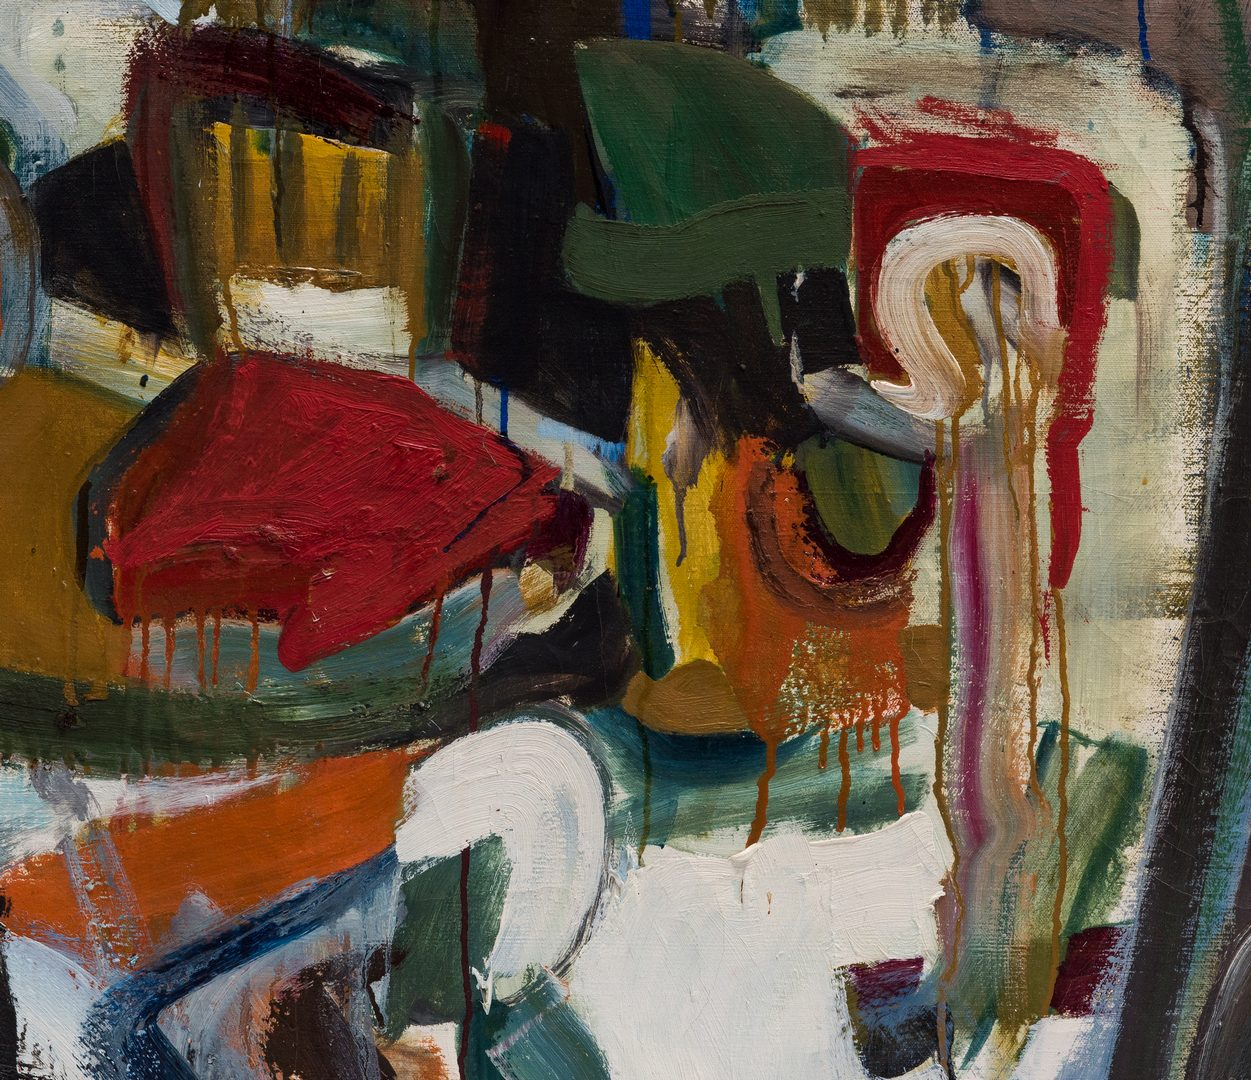 Lot 248: Merlin C. Dailey O/C expressionist painting, Interior with New Objects